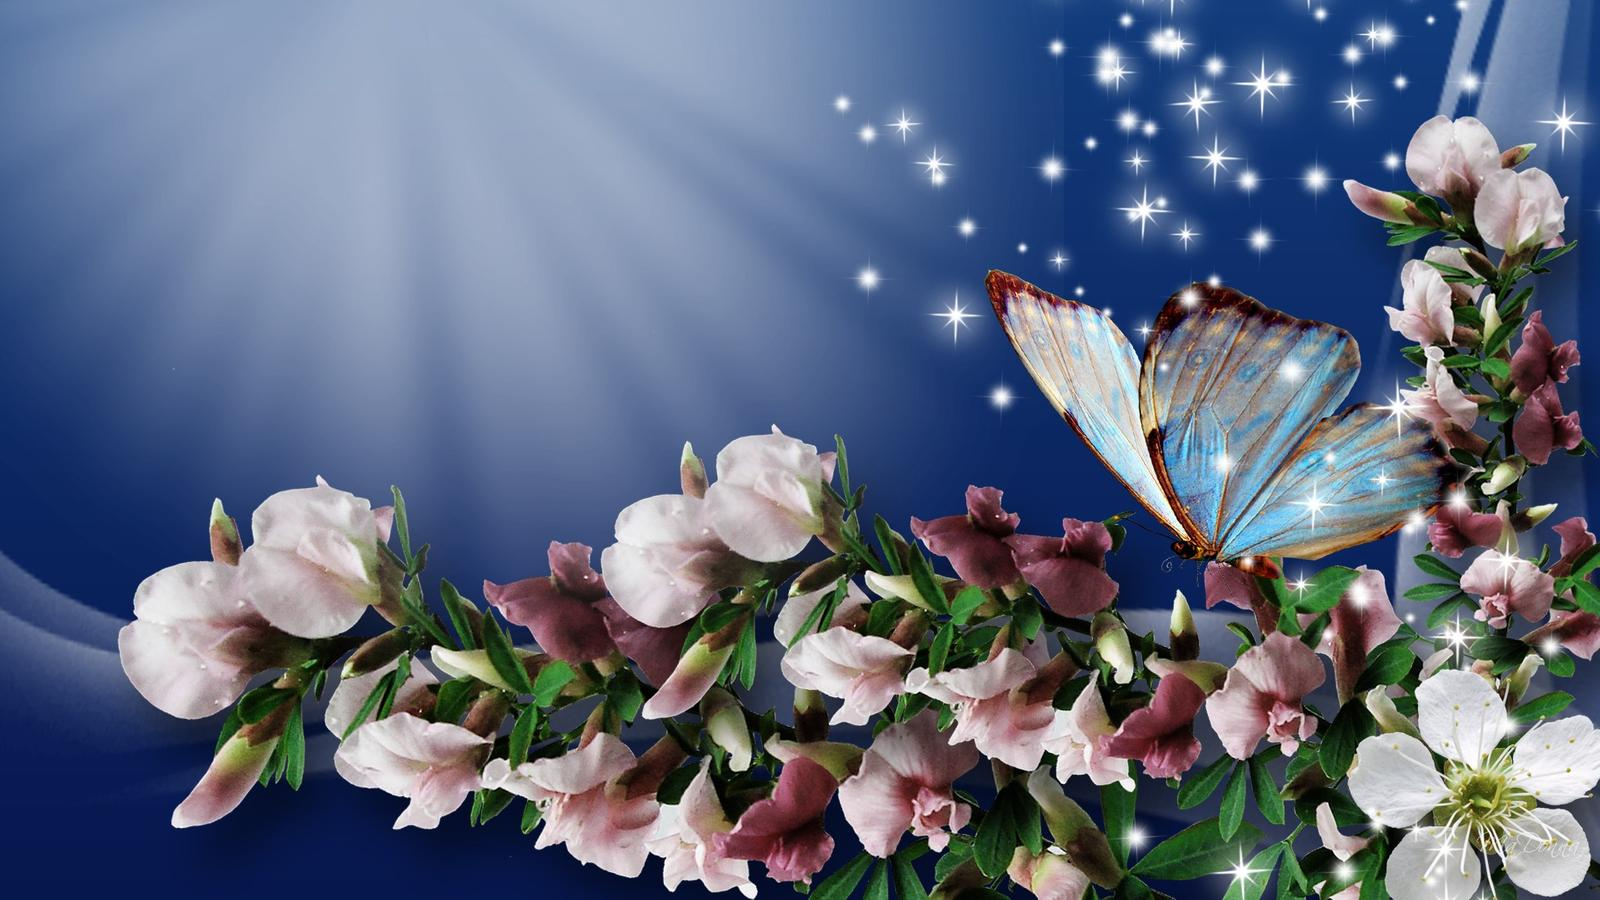 Butterfly on the beautiful flowers wallpaper download 1600x900 izmirmasajfo